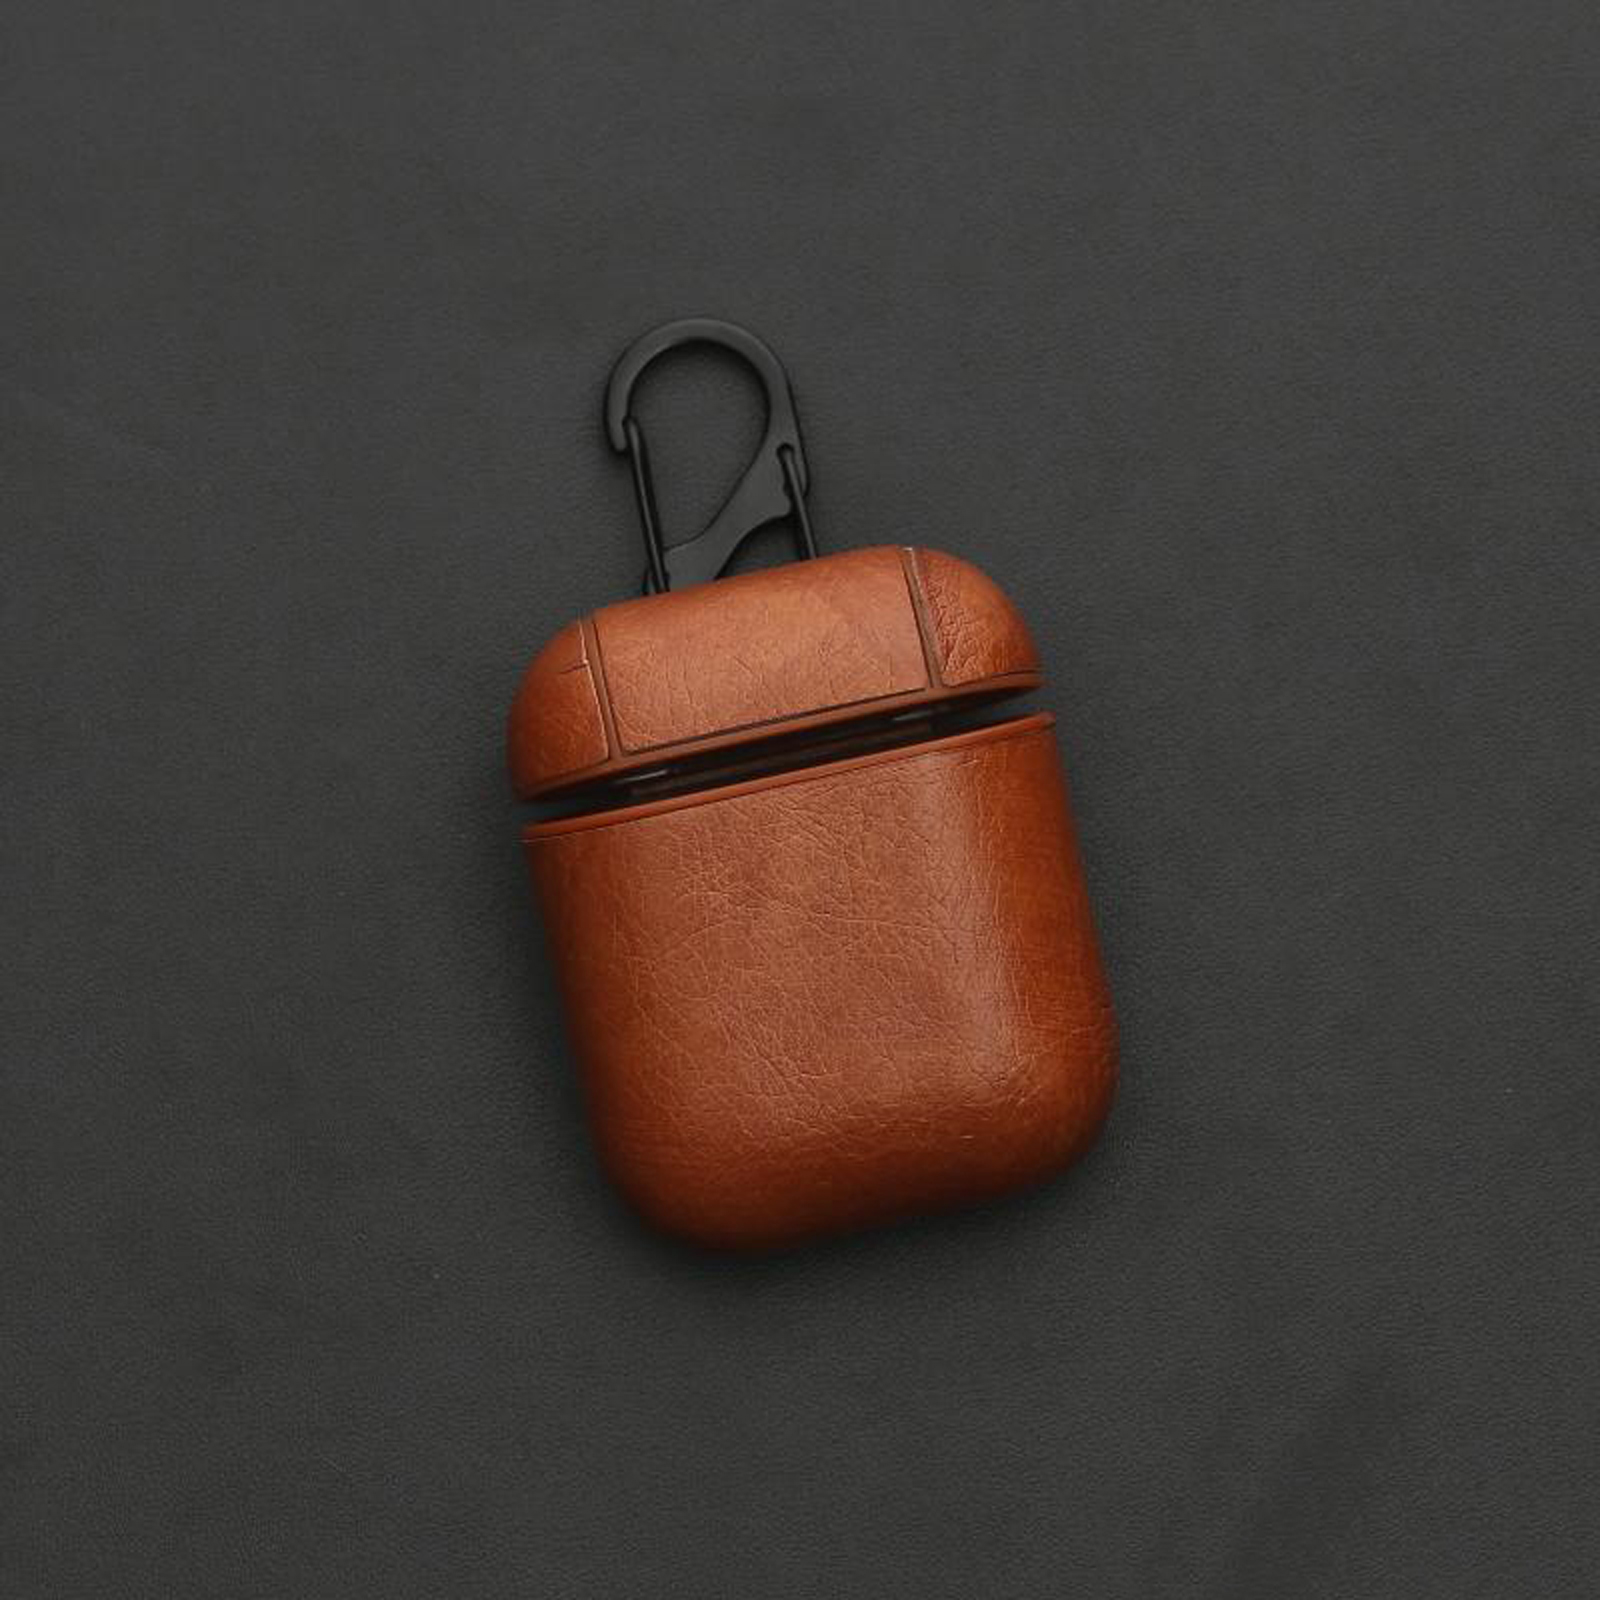 New-Leather-Soft-Skin-Case-For-Apple-Airpods-1-2-1st-2nd-Gen-Earphones-PU-Cover thumbnail 15